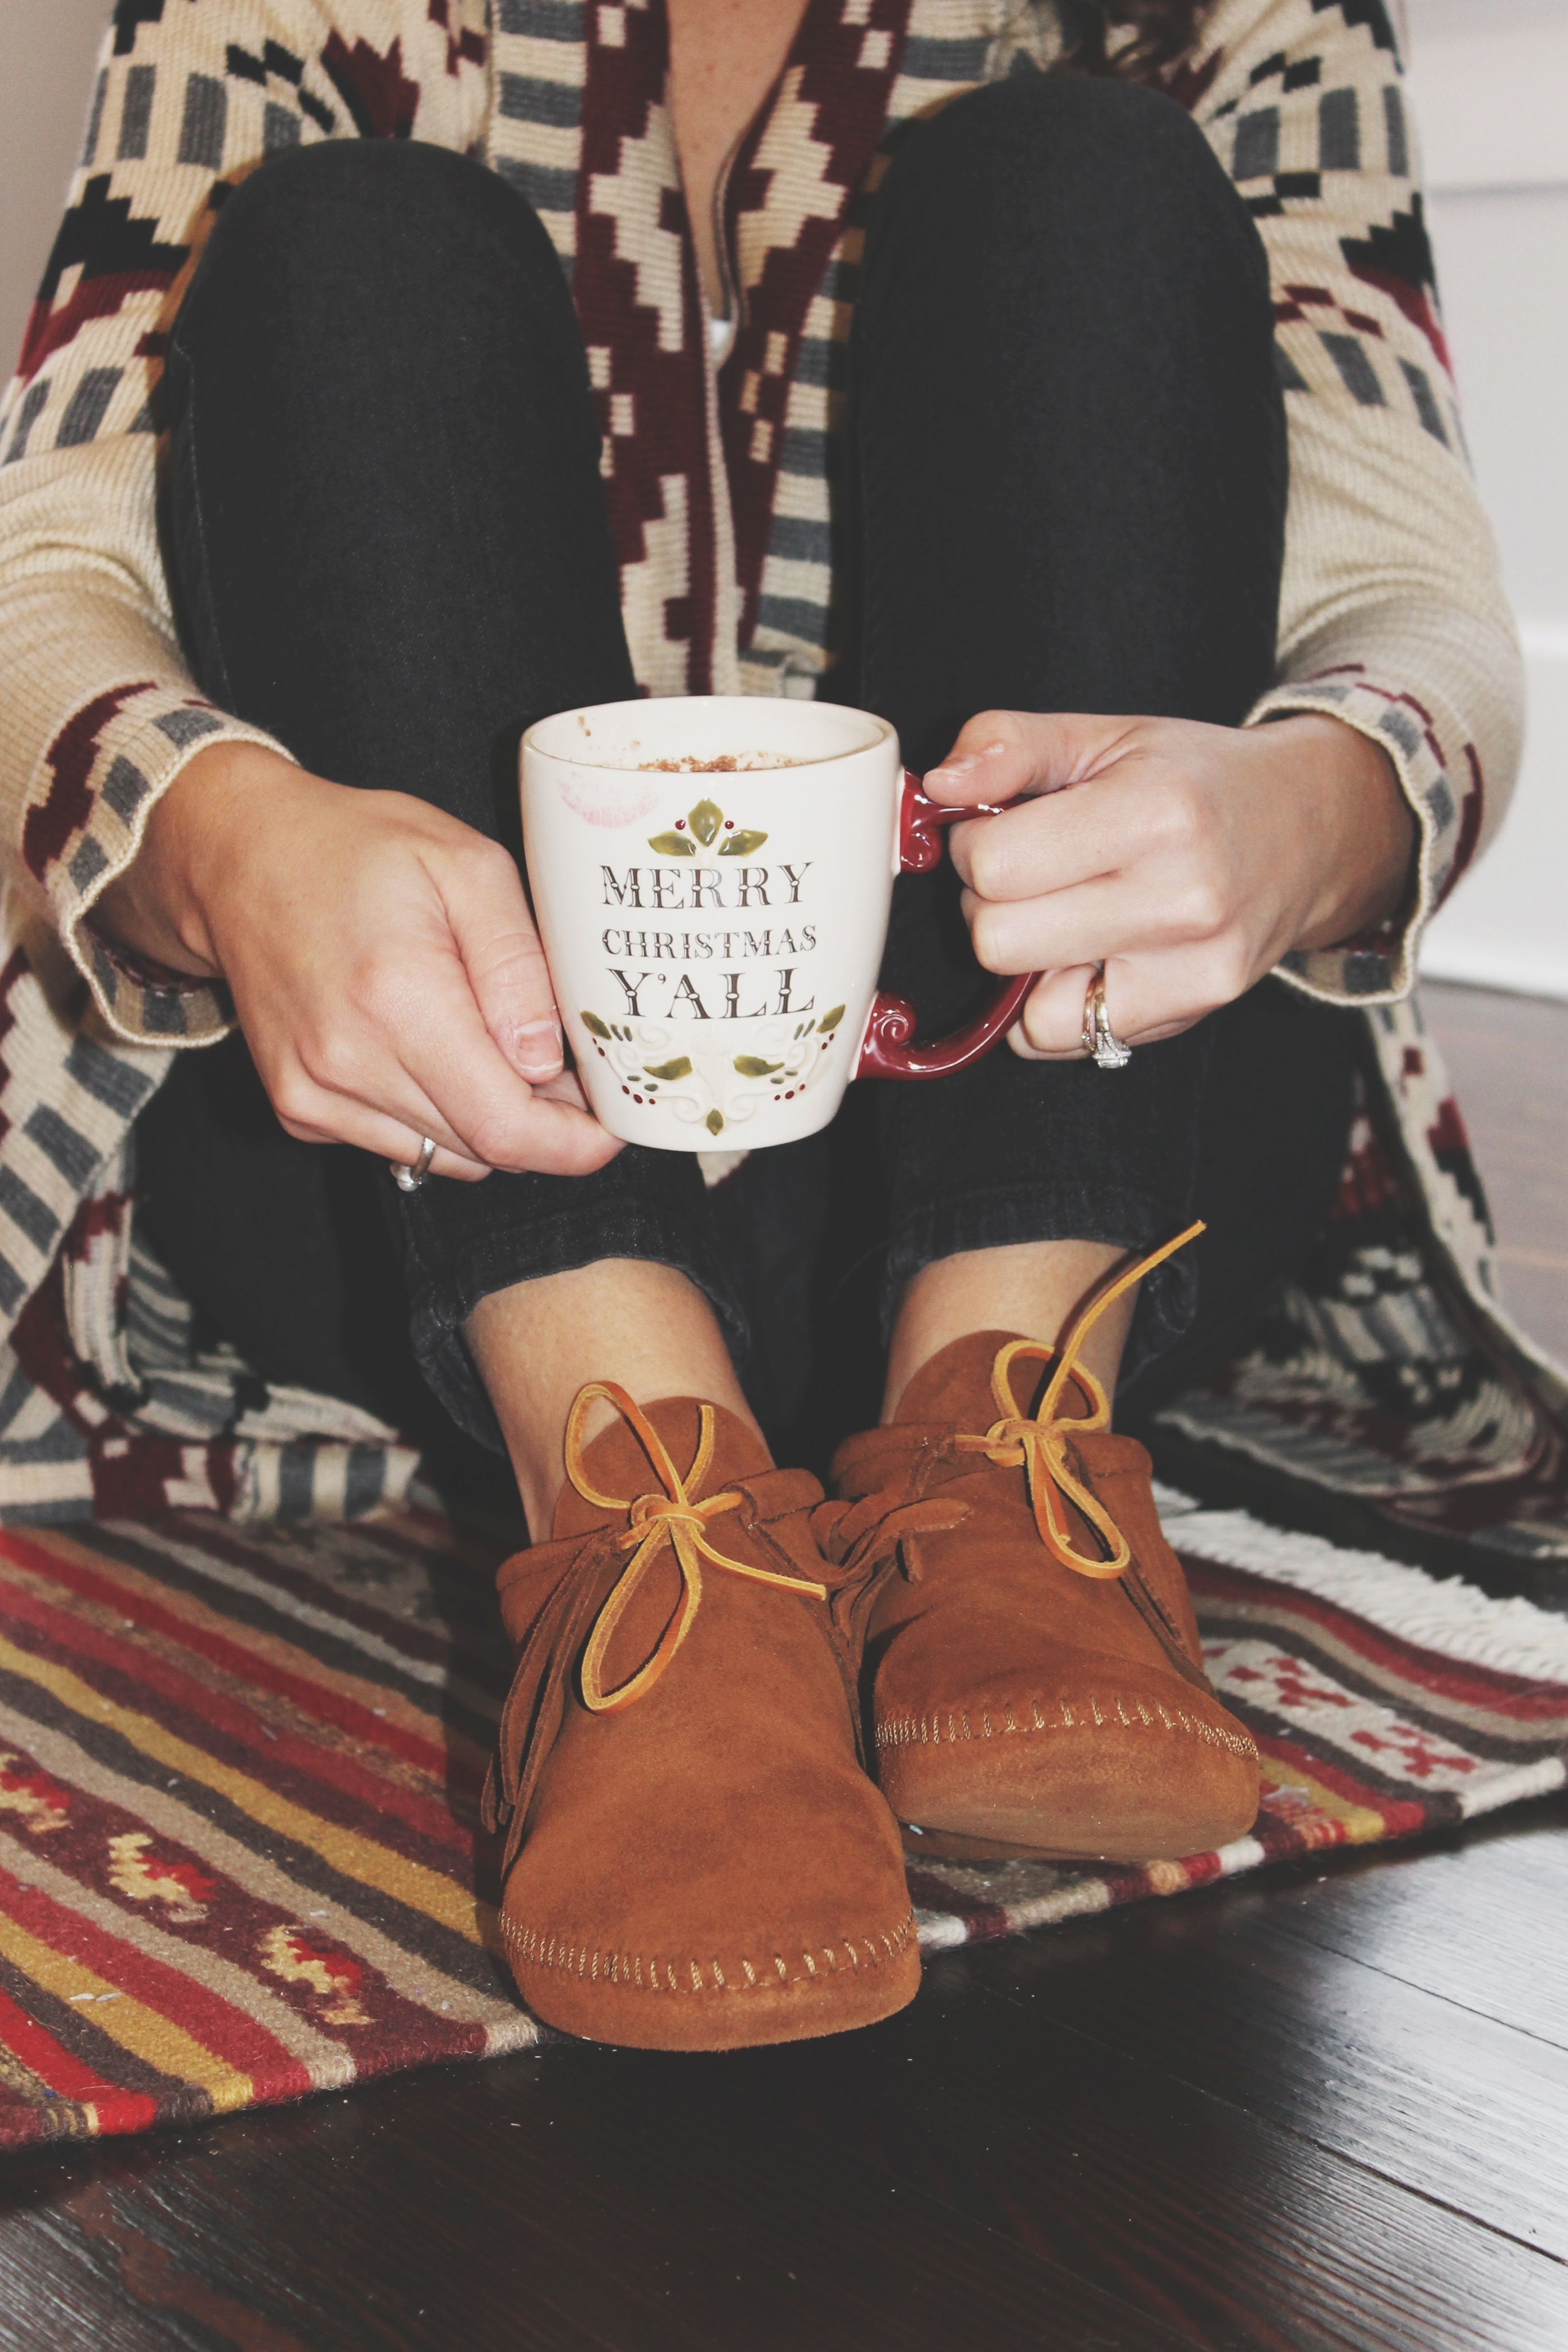 Minnetonka suede leather knee high tall lace up moccasin fringe boots - The Minnetonka Classic Fringe Boot Softsole That I Wore For The Holiday